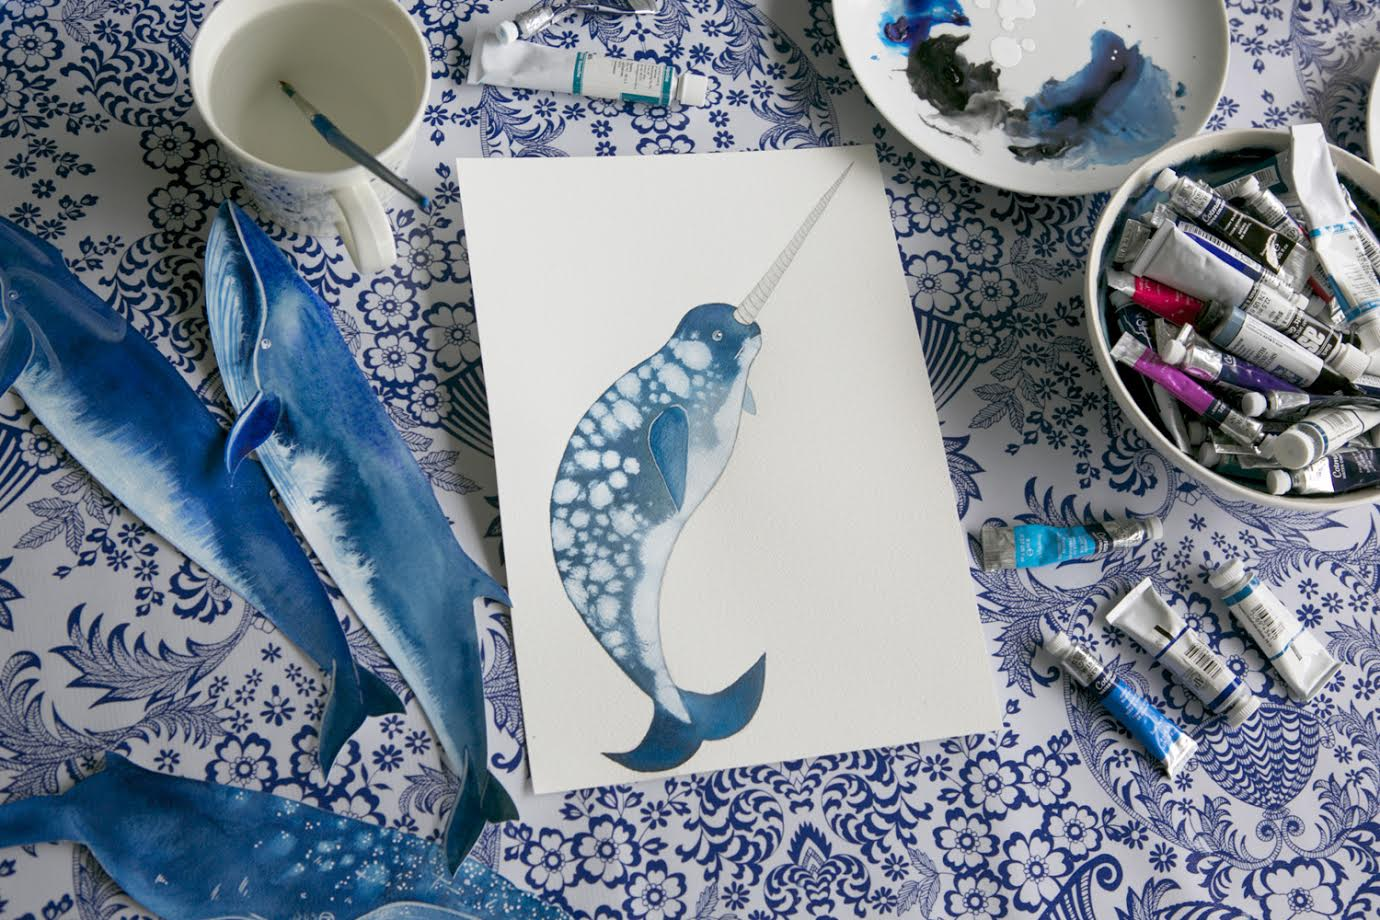 Watercolor Sea Painting/ A Creative Home..with Artist Michelle Fleur in Perth, Australia // Surelysimple.com